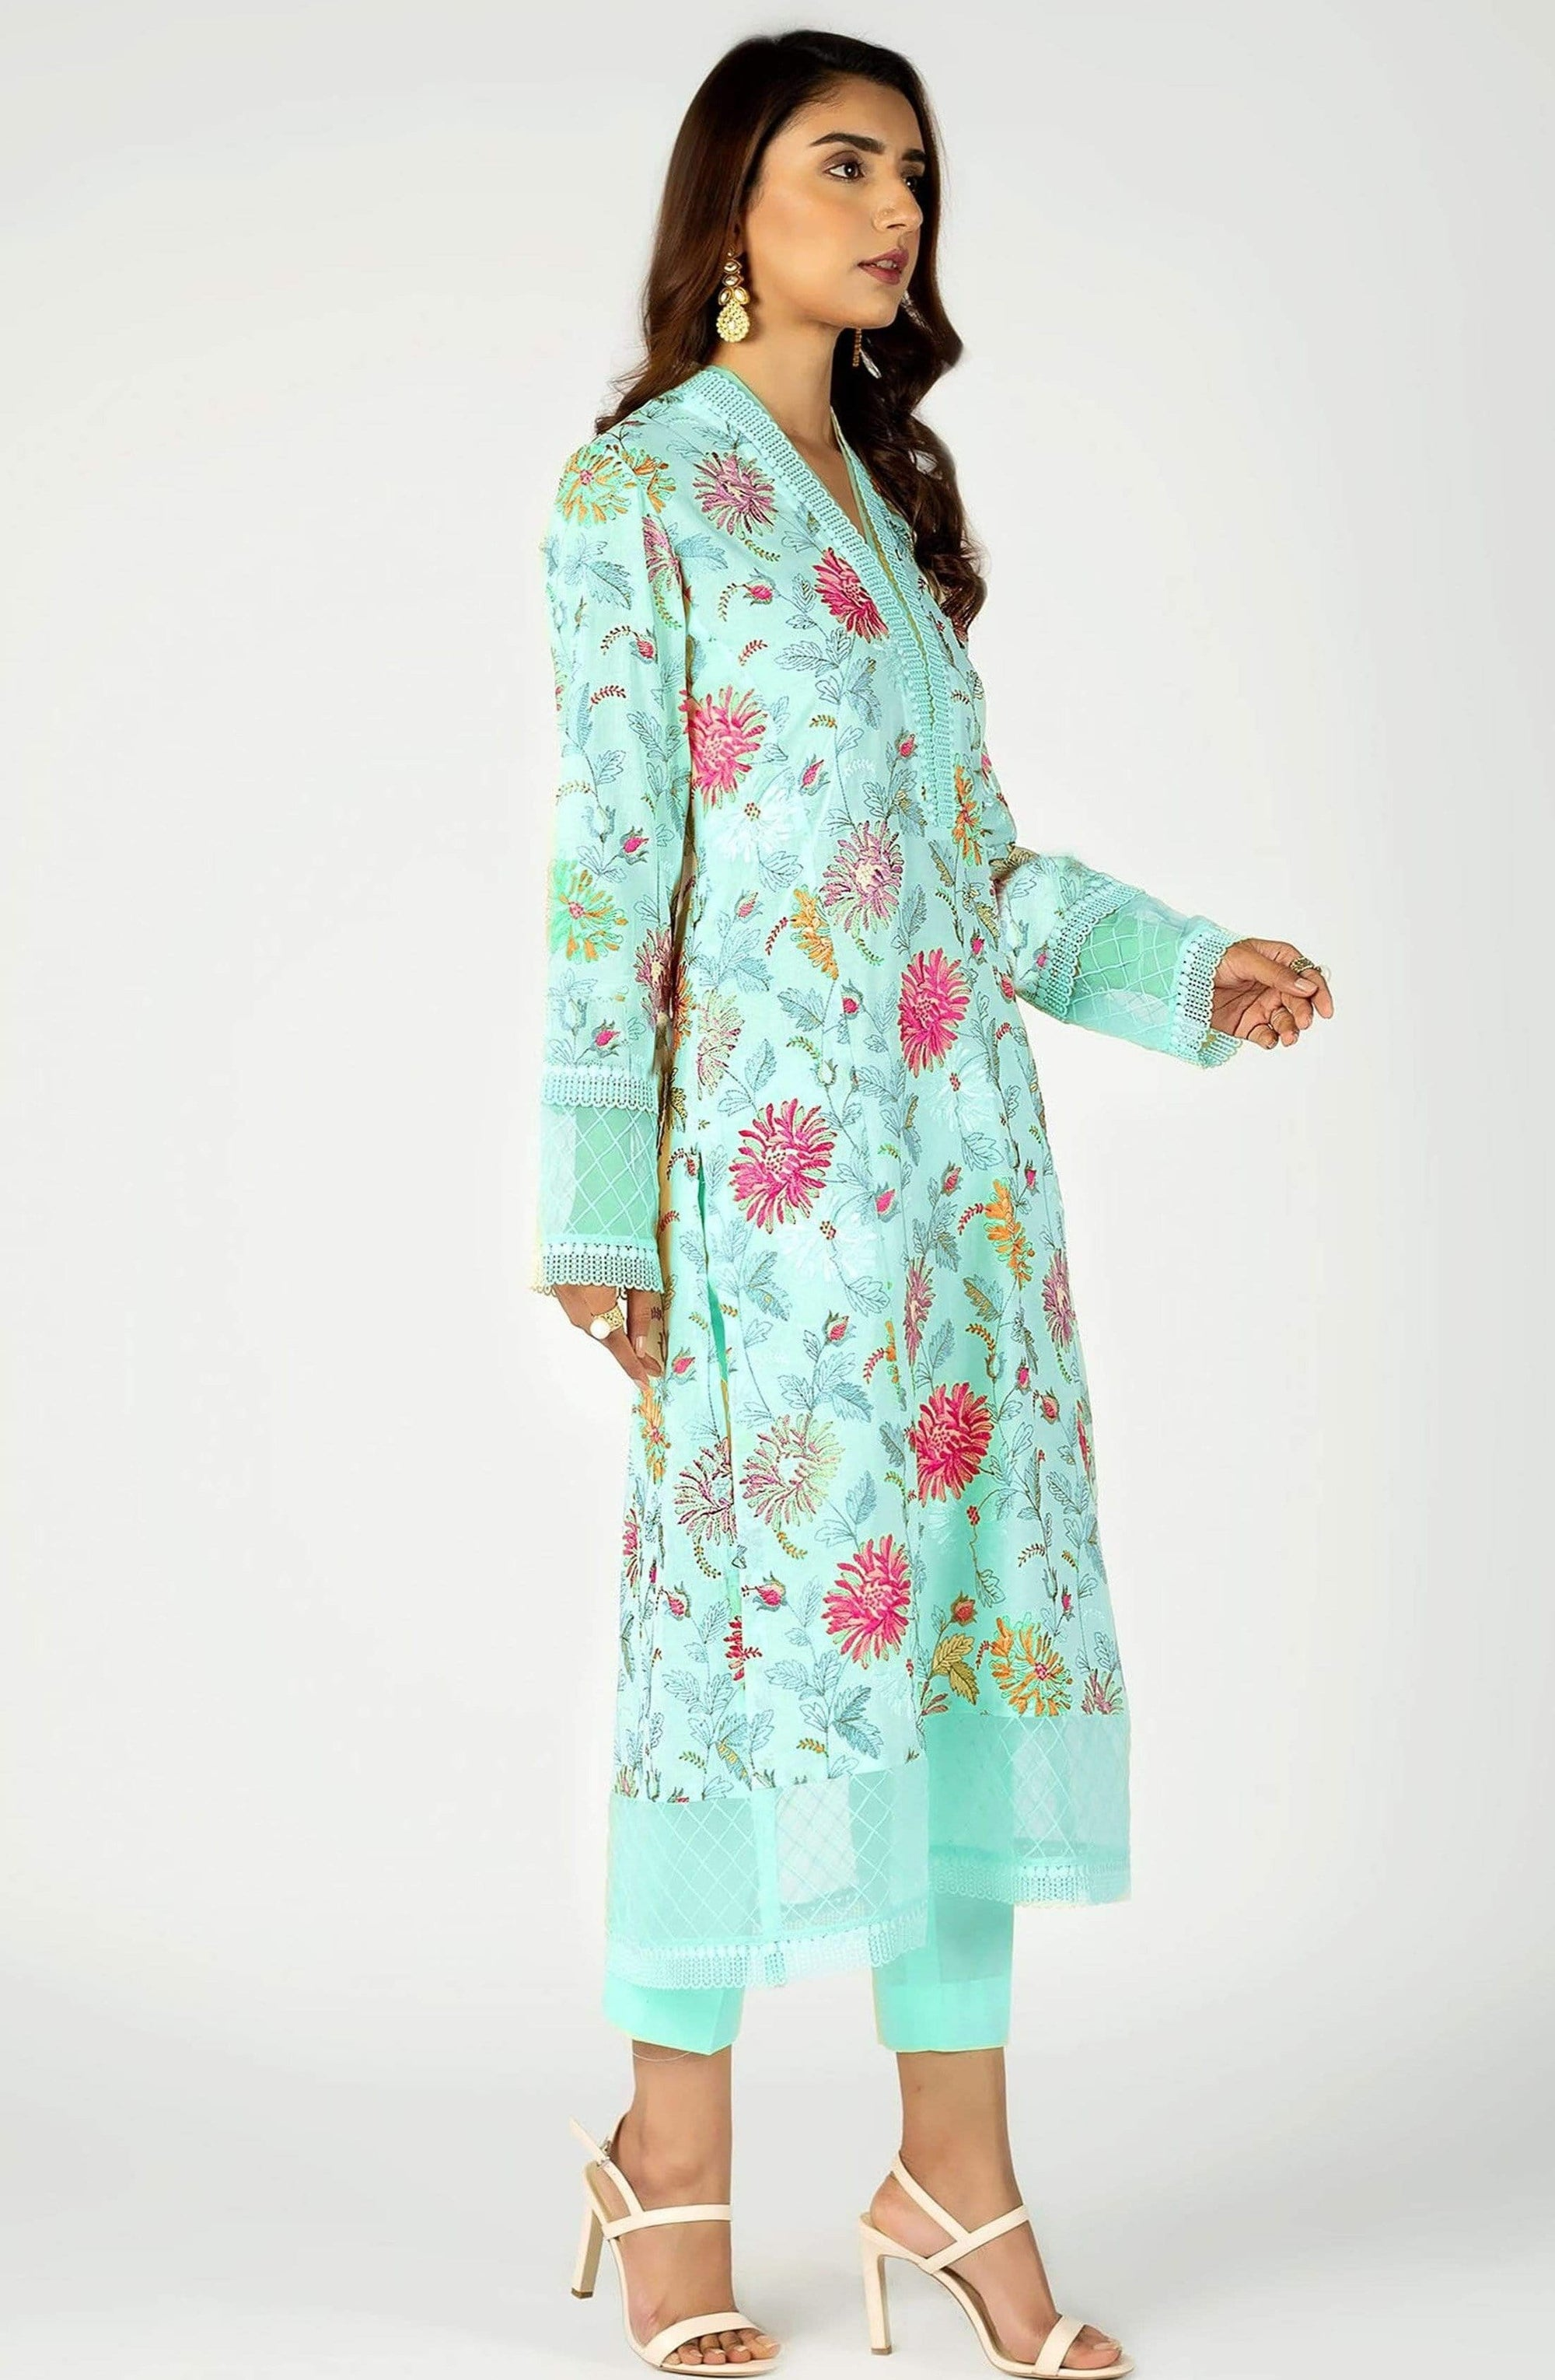 Bareeze 307-Embroided 2pc lawn dress shirt & trouser.